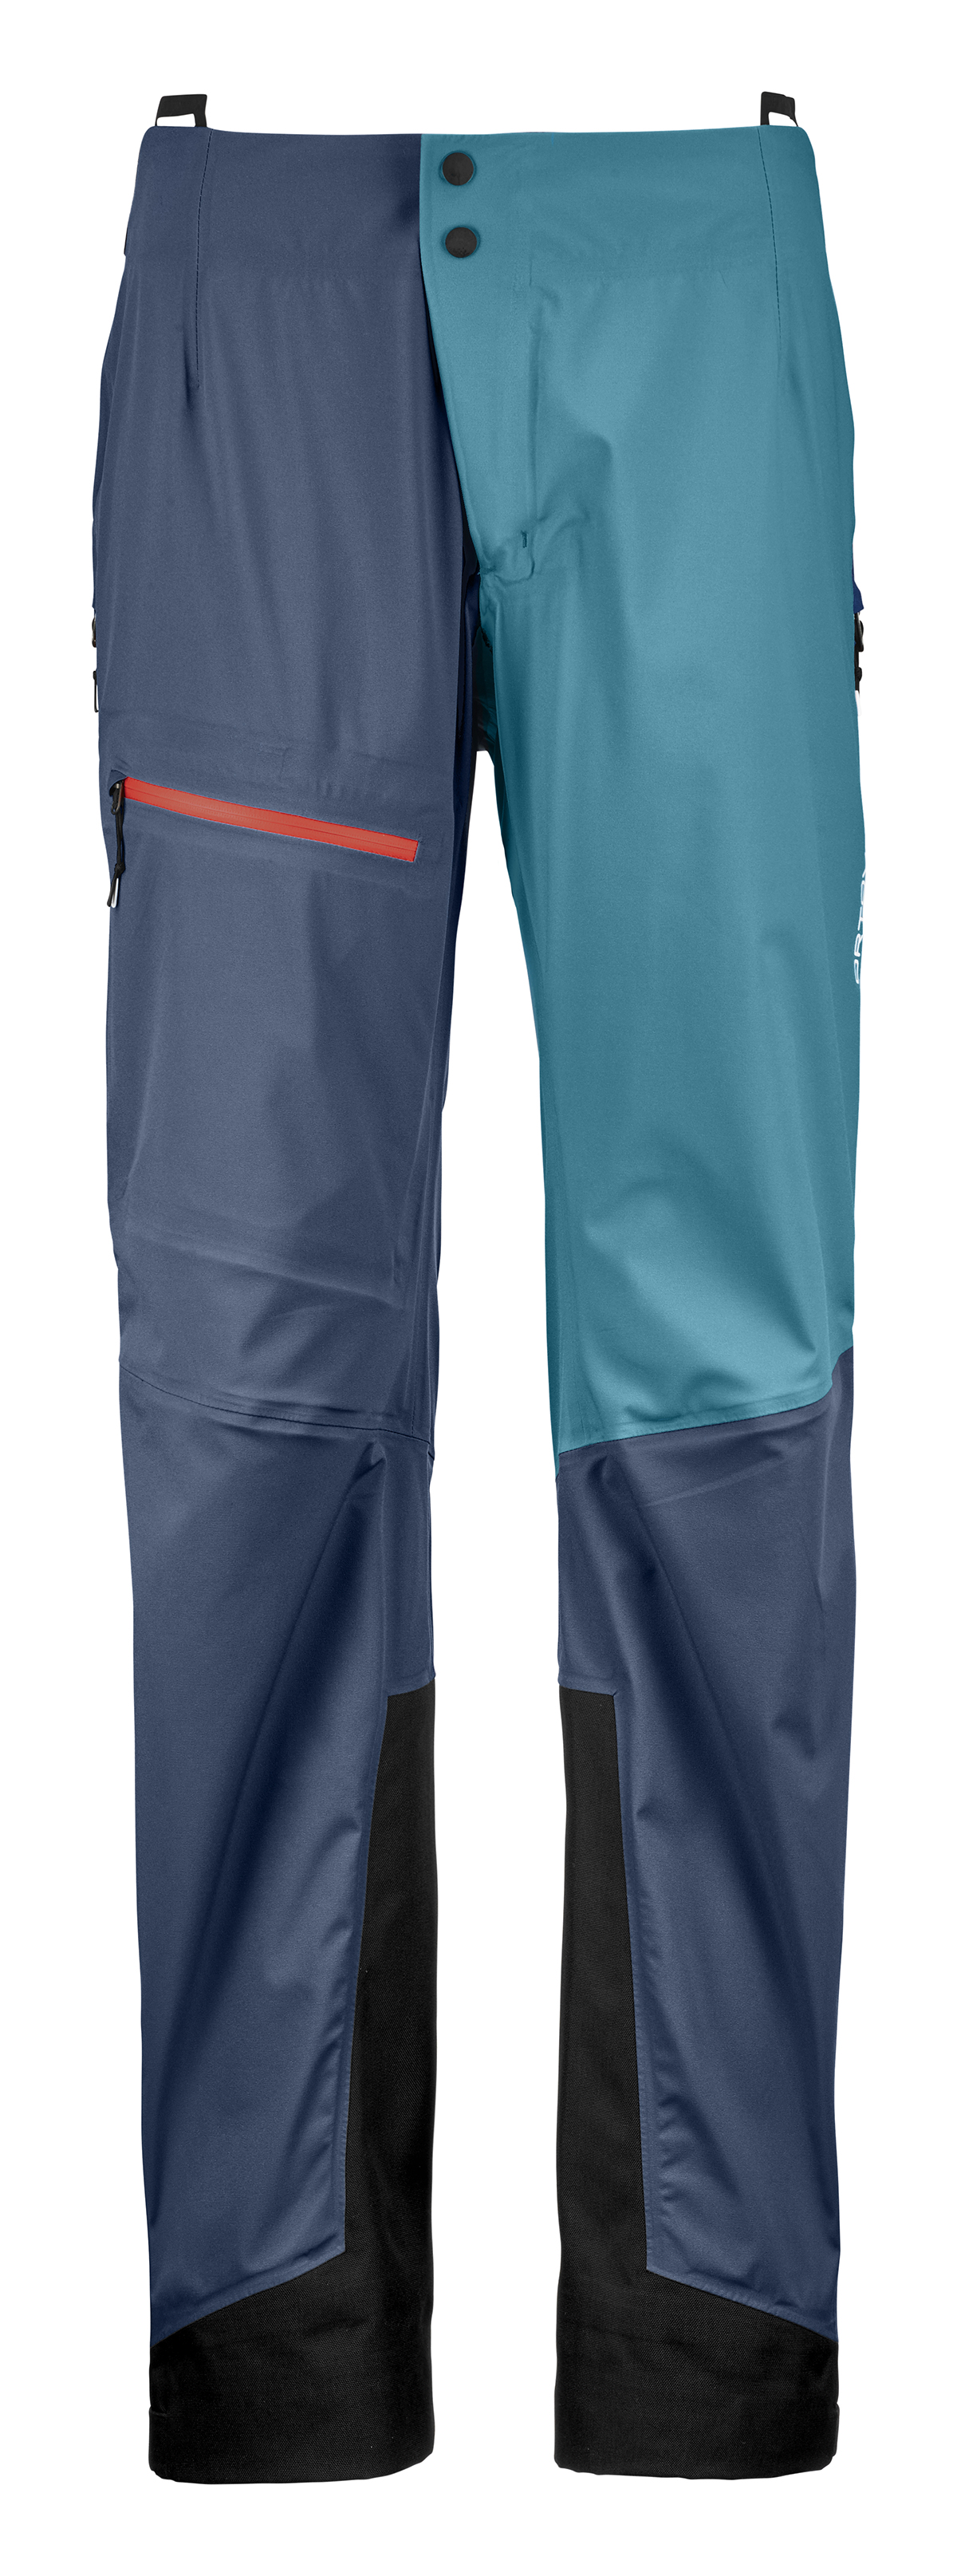 2-MERINO-NAKED-SHEEP-3L-ORTLER-PANTS-W-70611-night-blue-MidRes.jpg